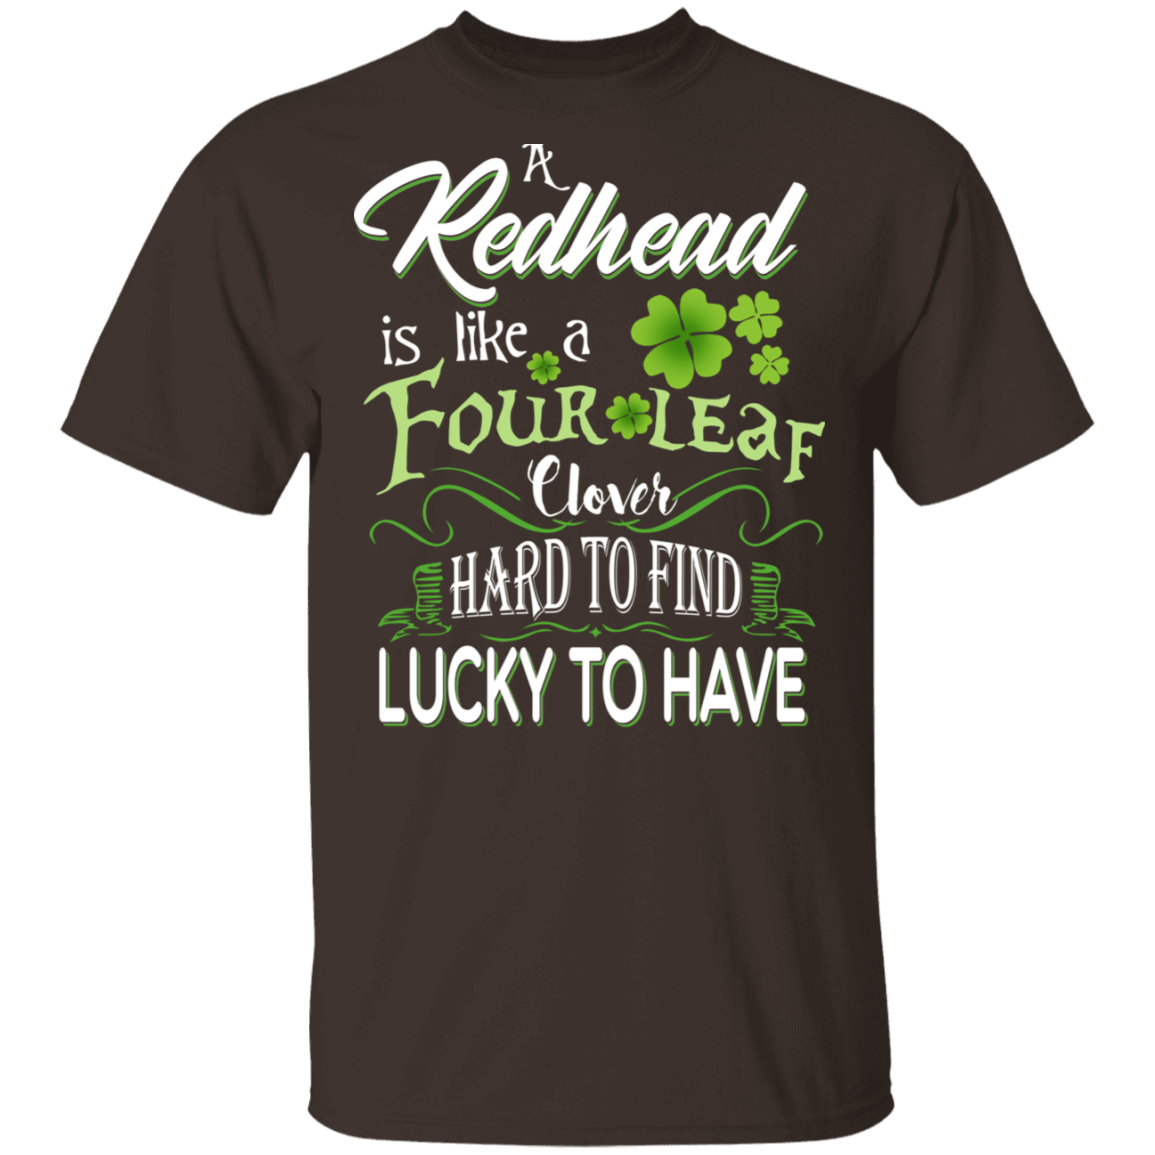 A Redhead Is Like A Four Leaf Clover Hard To Find Lucky To Have T-Shirts, Hoodies 1049-9956-83108879-48152 - Tee Ript